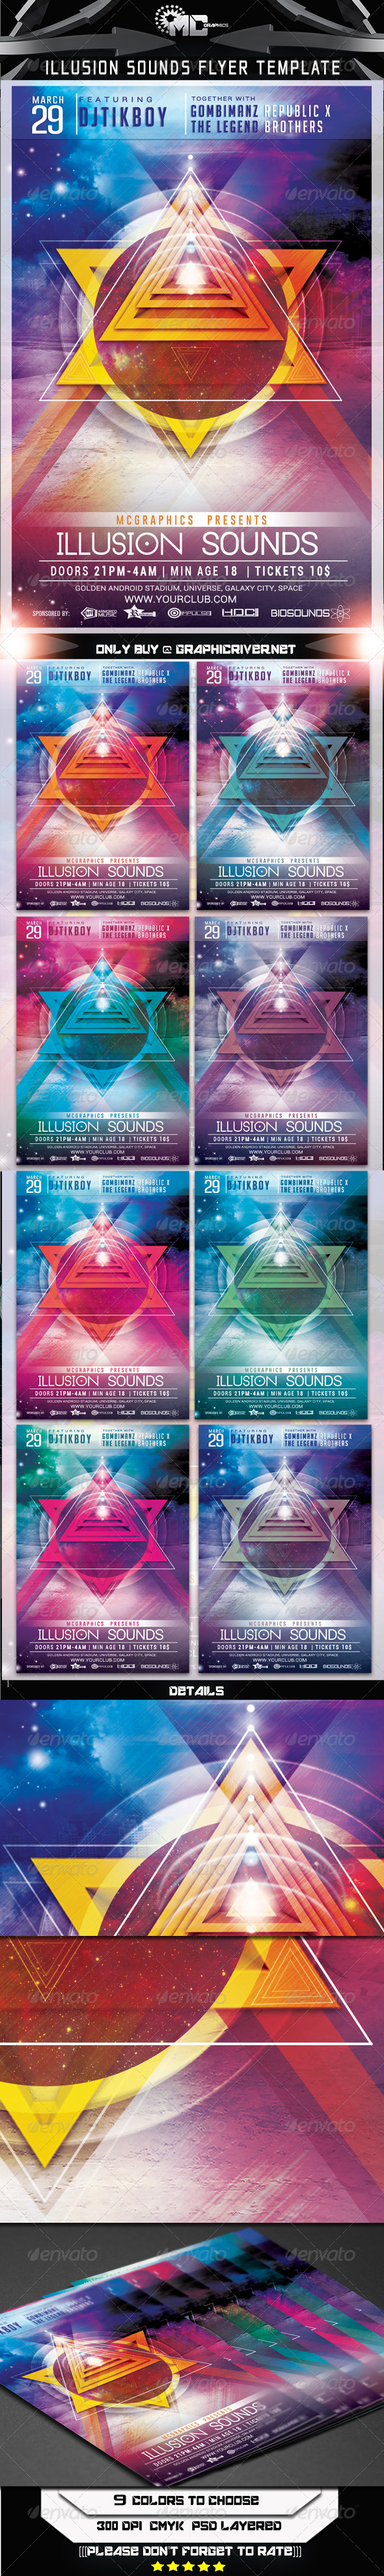 GraphicRiver Illusion Sounds Flyer Template 7225805